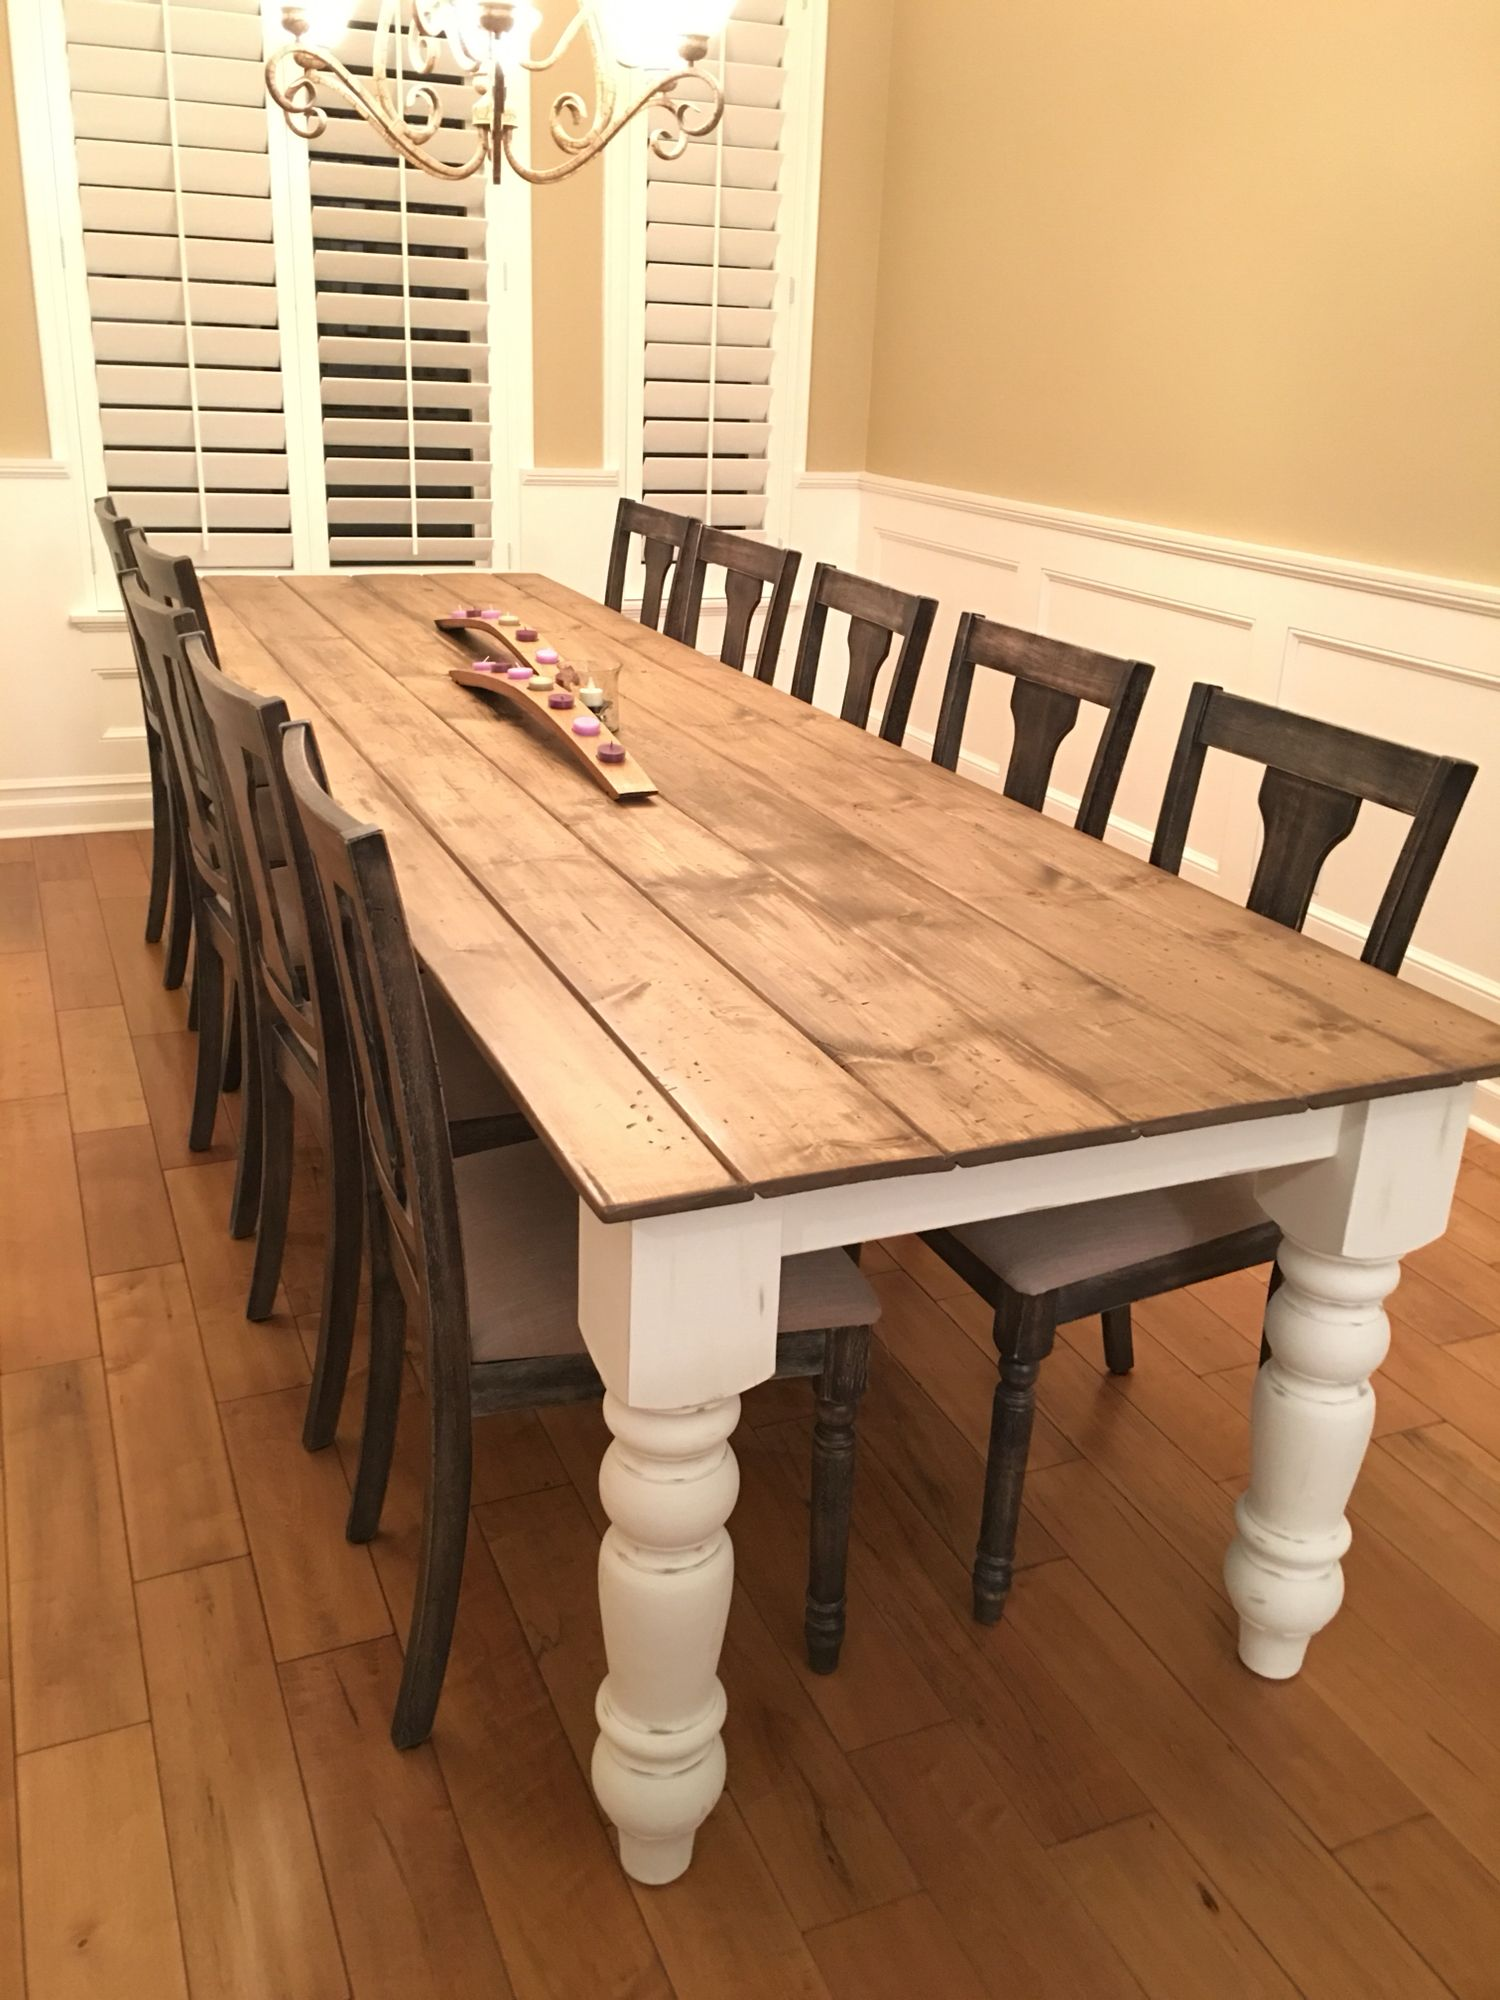 diy farmhouse table top DIY FARMHOUSE TABLE. My husband made my 10 foot 8 inch farmhouse  diy farmhouse table top